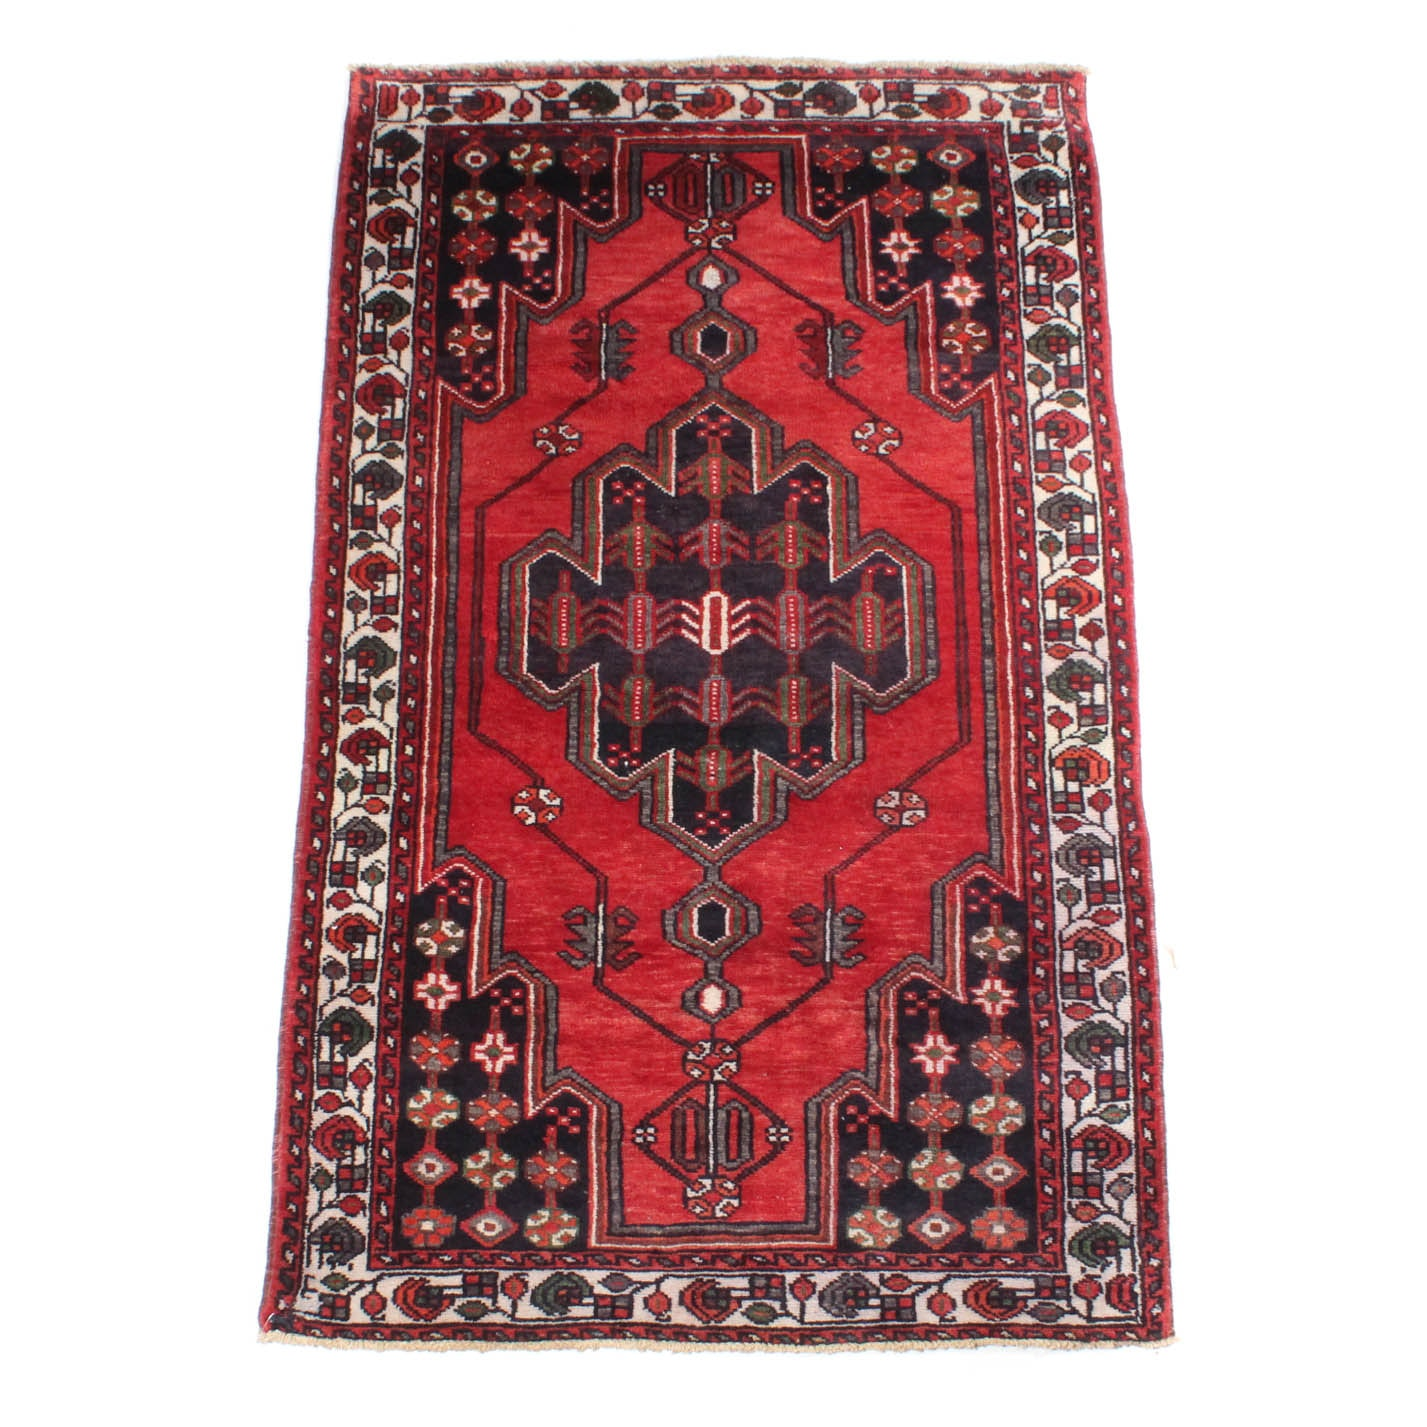 4' x 7' Vintage Hand-Knotted Persian Zanjan Area Rug